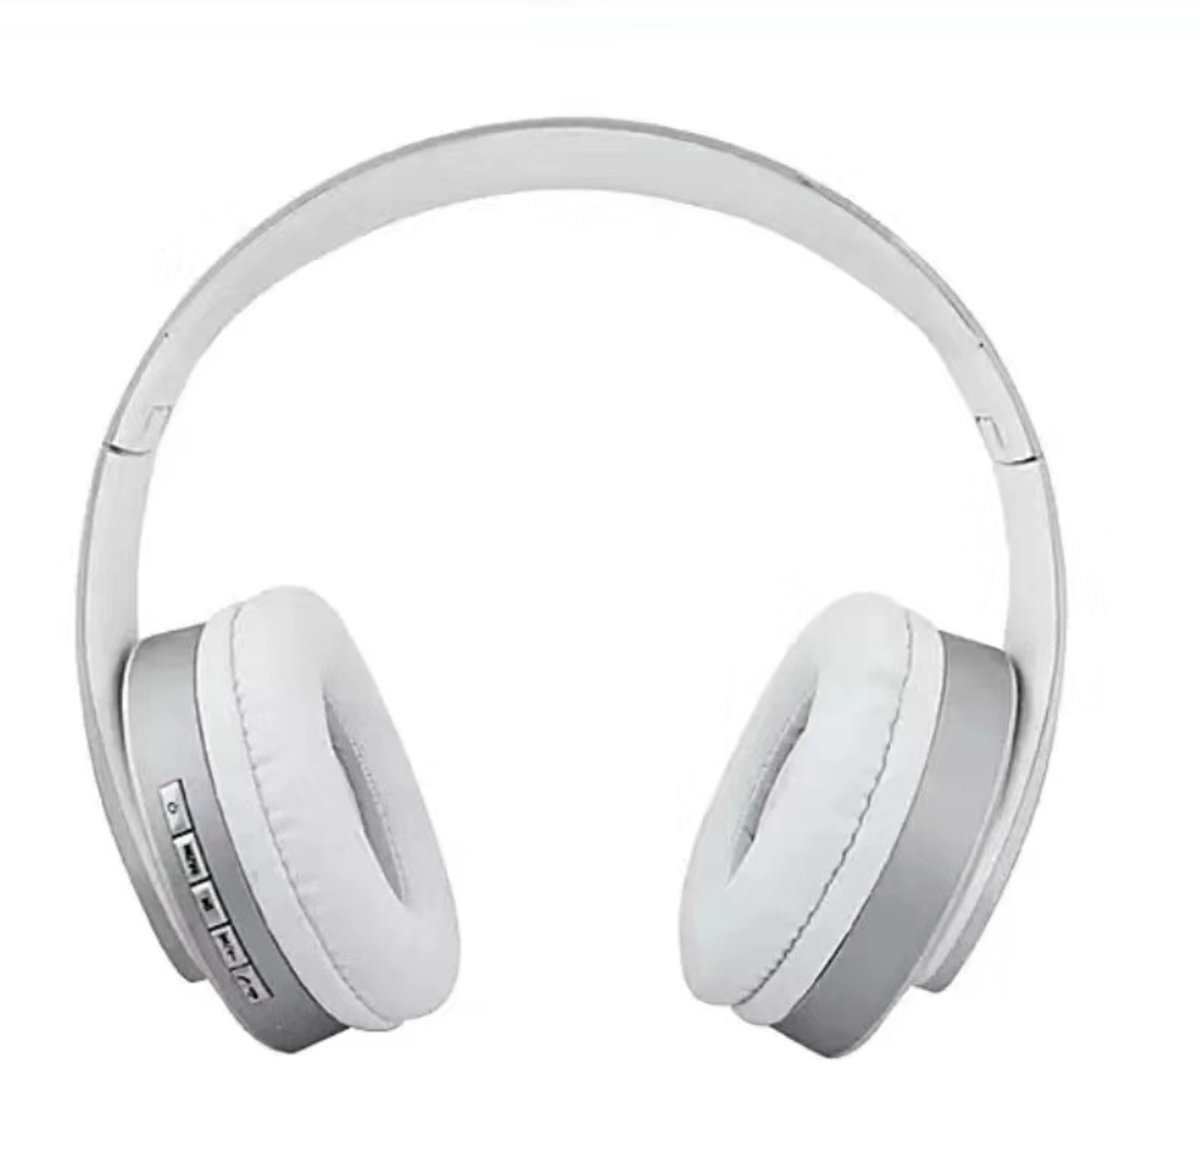 Quality Super Bass True Stereo Wireless Bluetooth Earphone Headphone with Mic - Silver